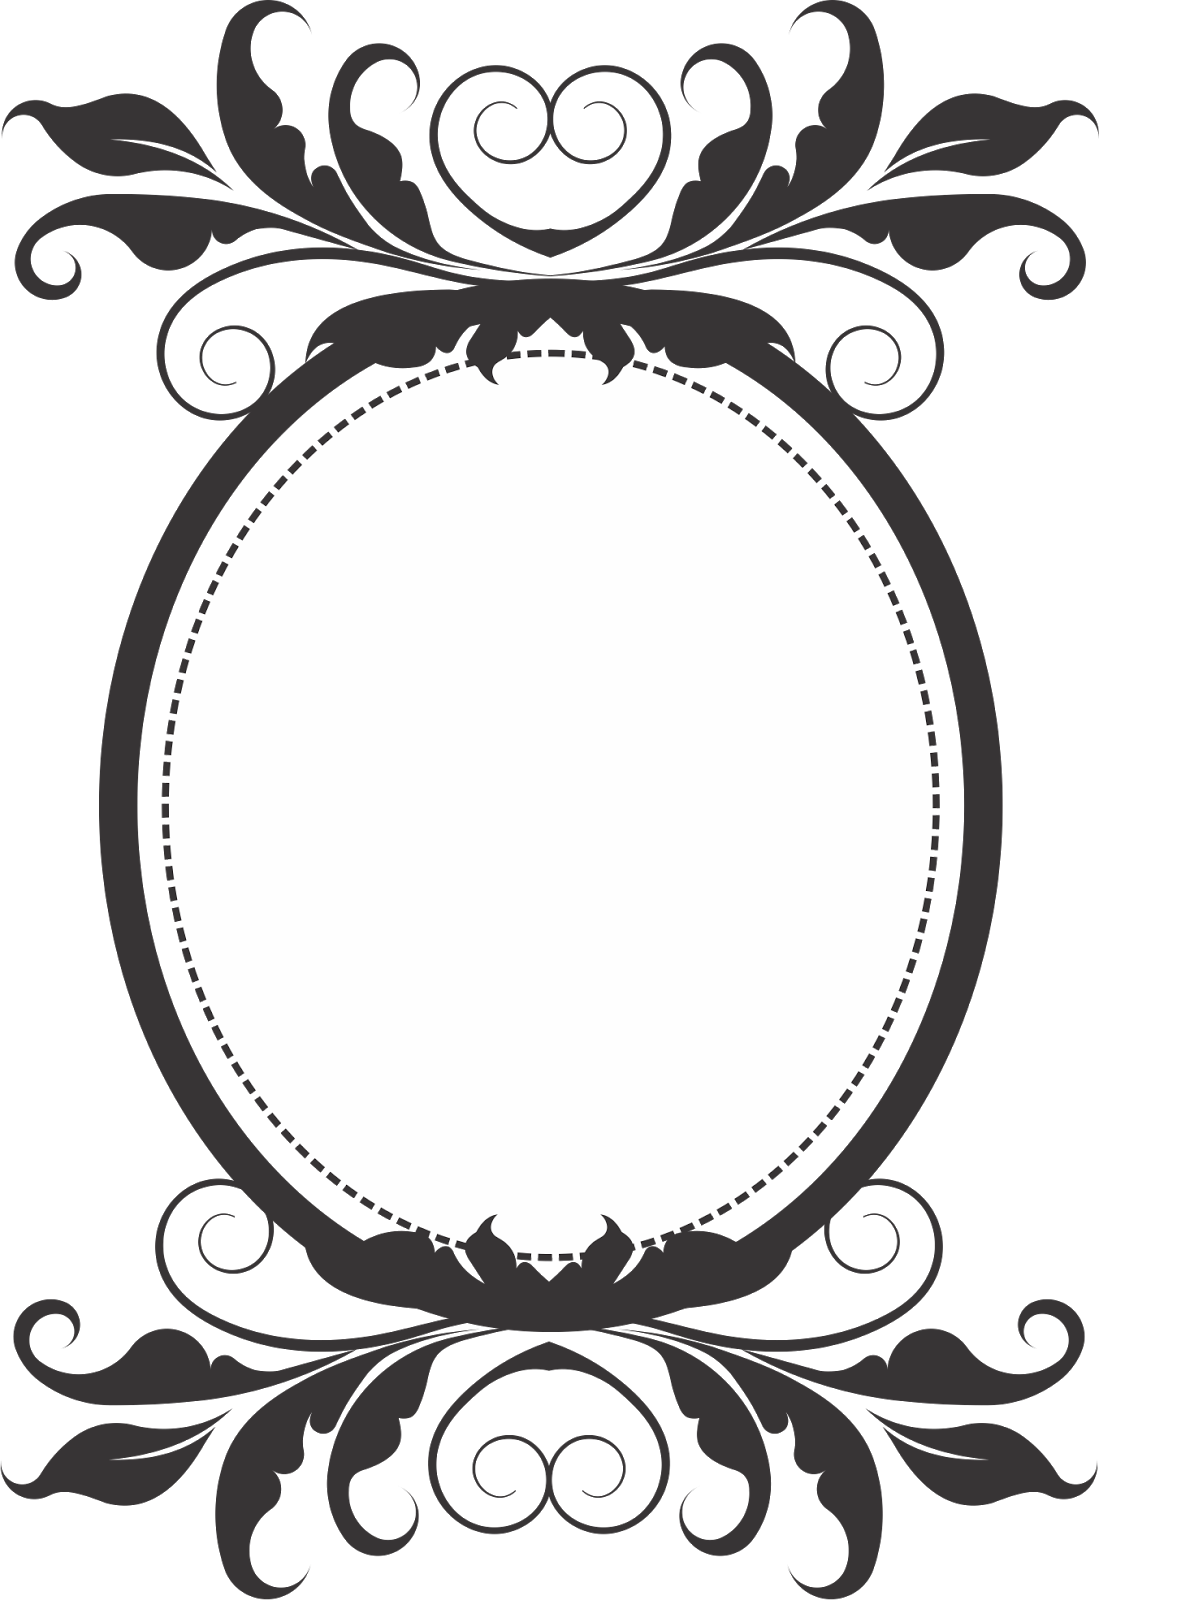 Frames svg baroque. Pin by jeny chique